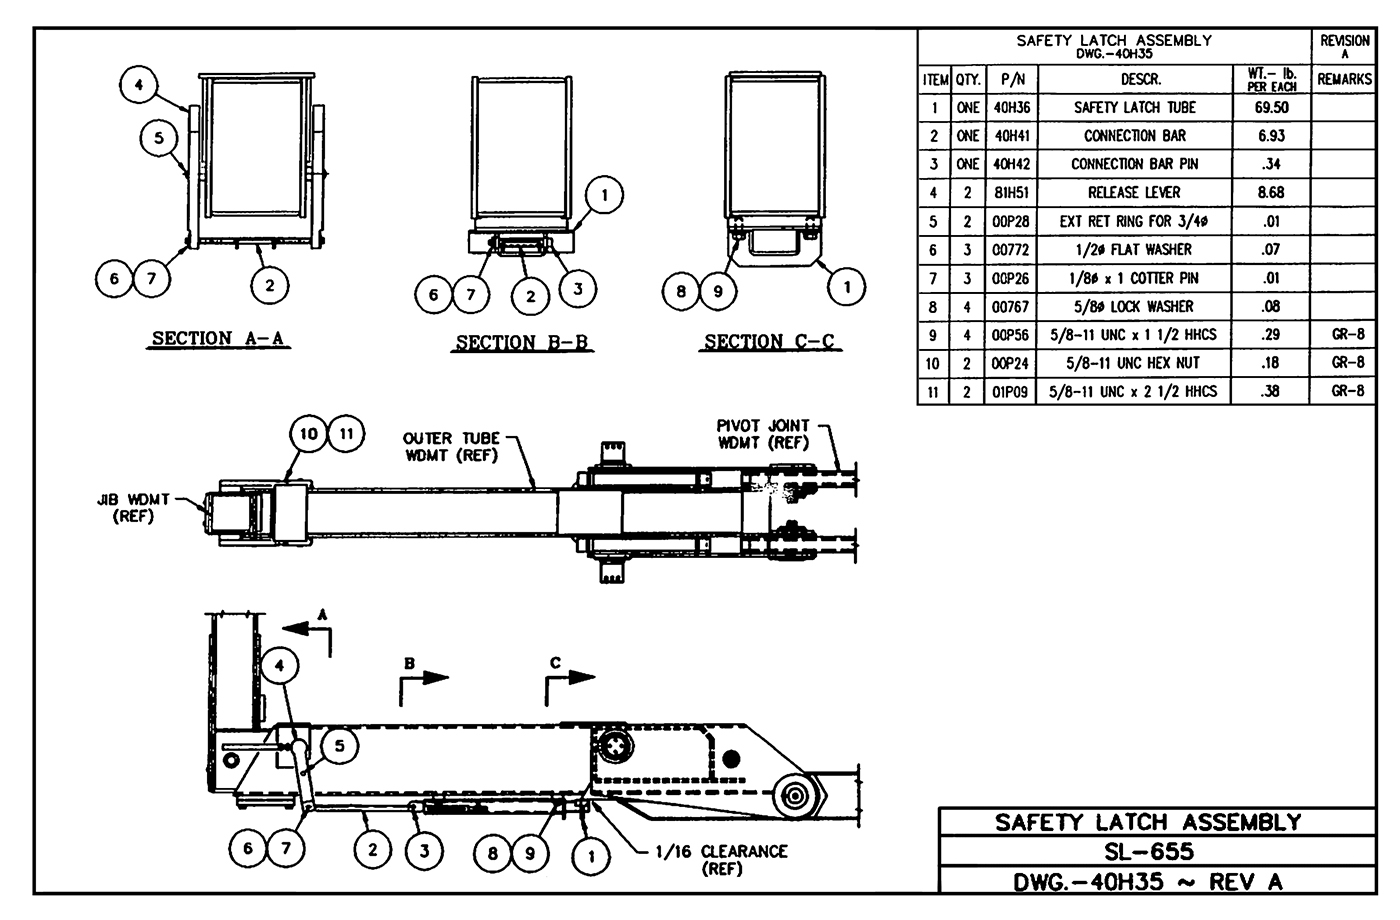 SL-655 Safety Latch Assembly Diagram